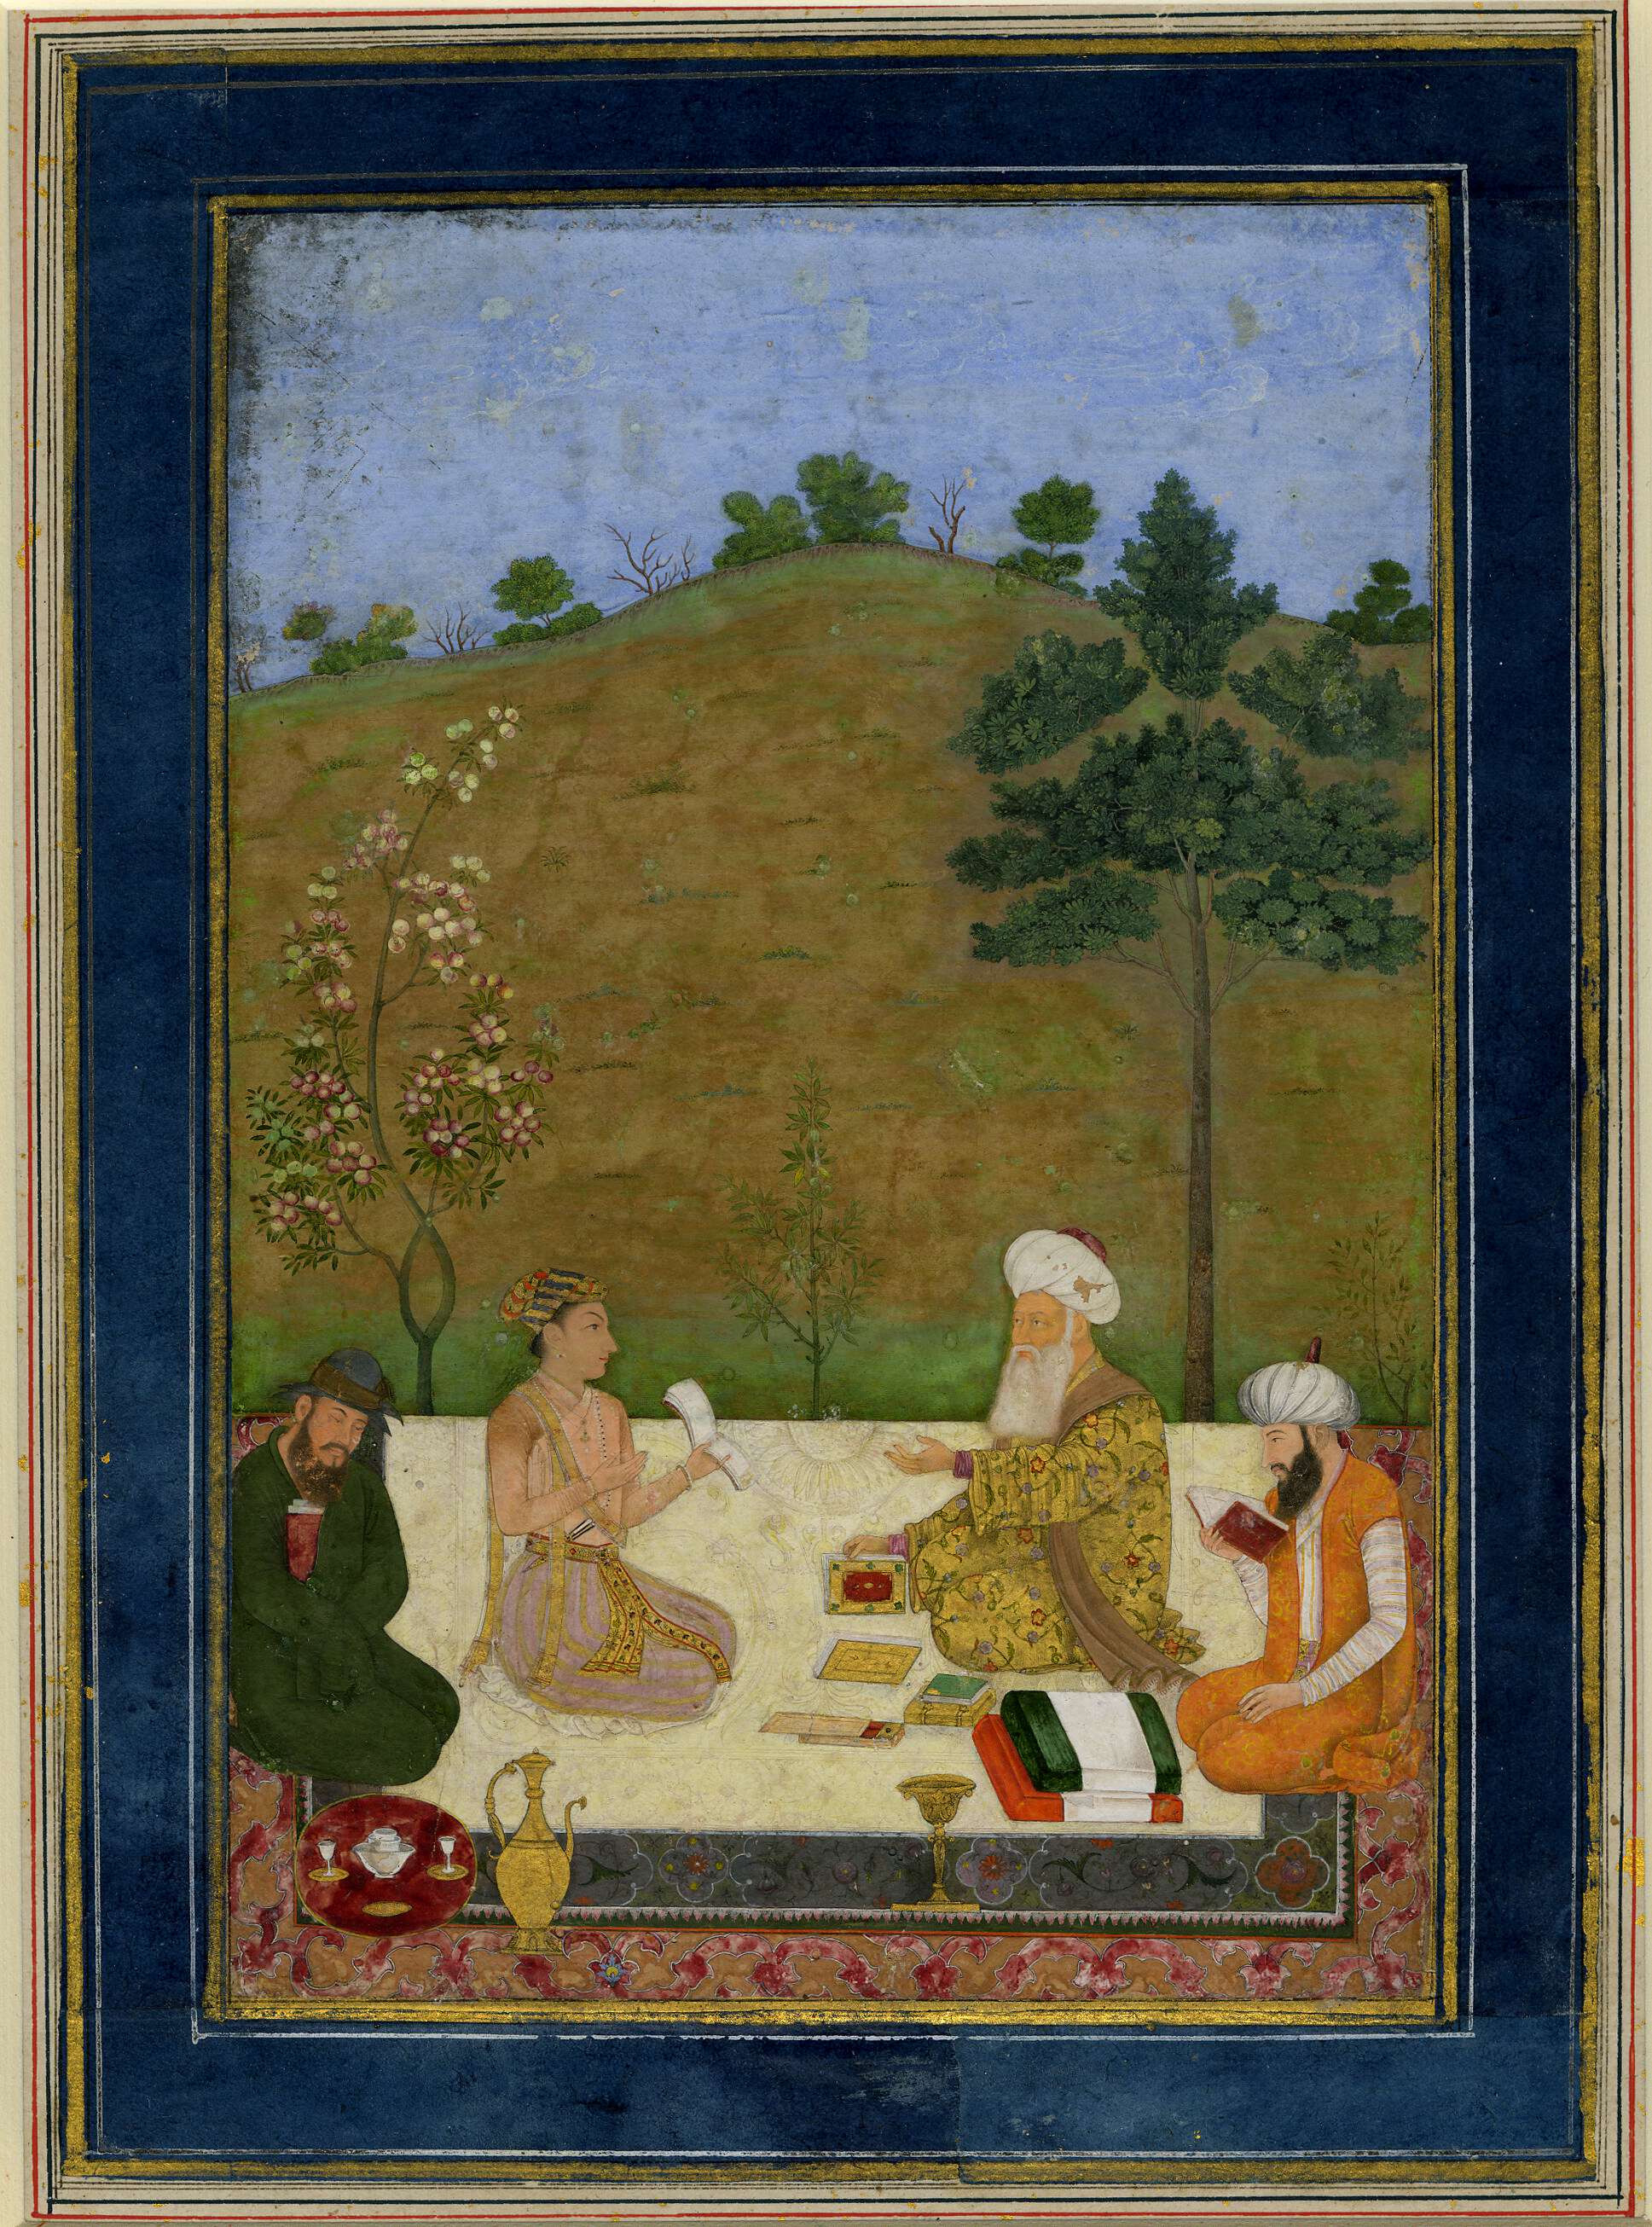 http://upload.wikimedia.org/wikipedia/commons/4/4c/D%C3%A1r%C3%A1_Shik%C3%BAh_with_three_sages_with_inscription.jpg